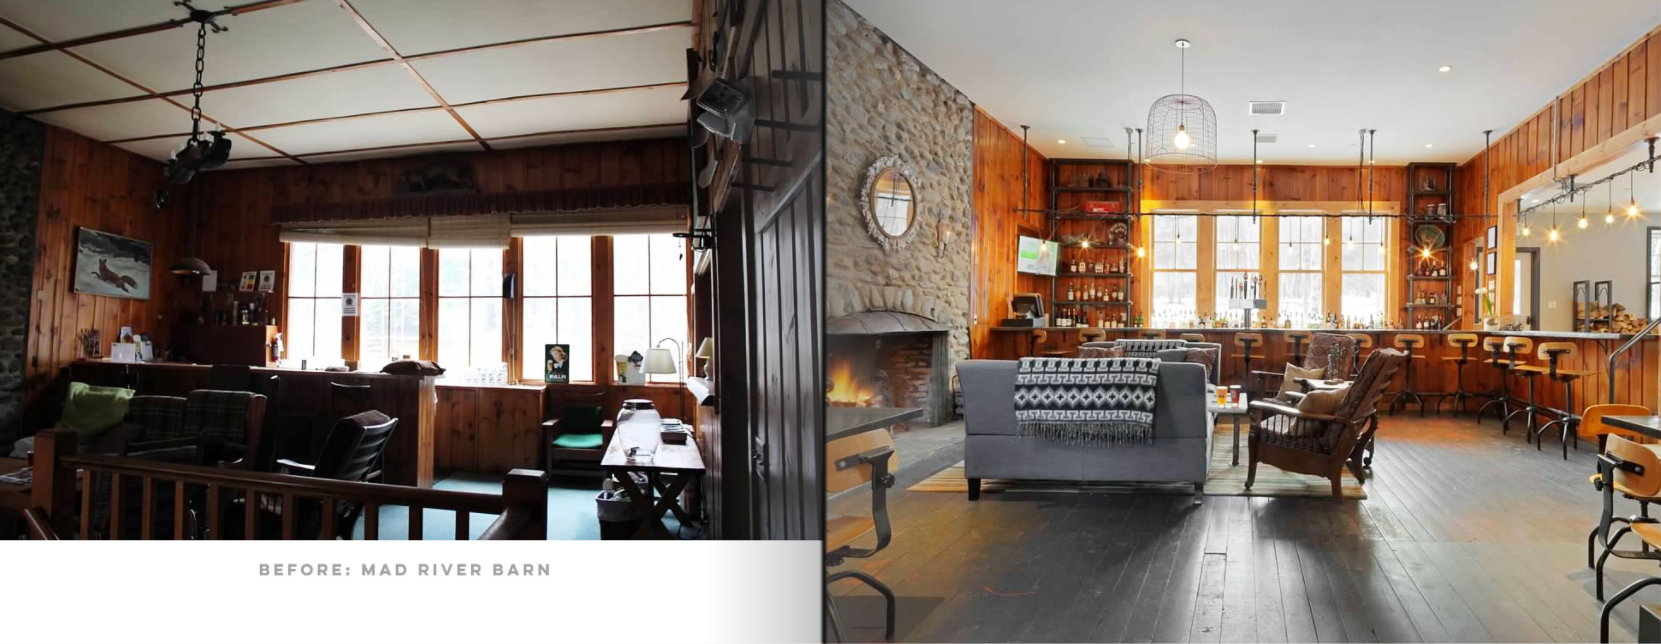 Mad River Barn before and after interior design by Joanne Palmisano.png